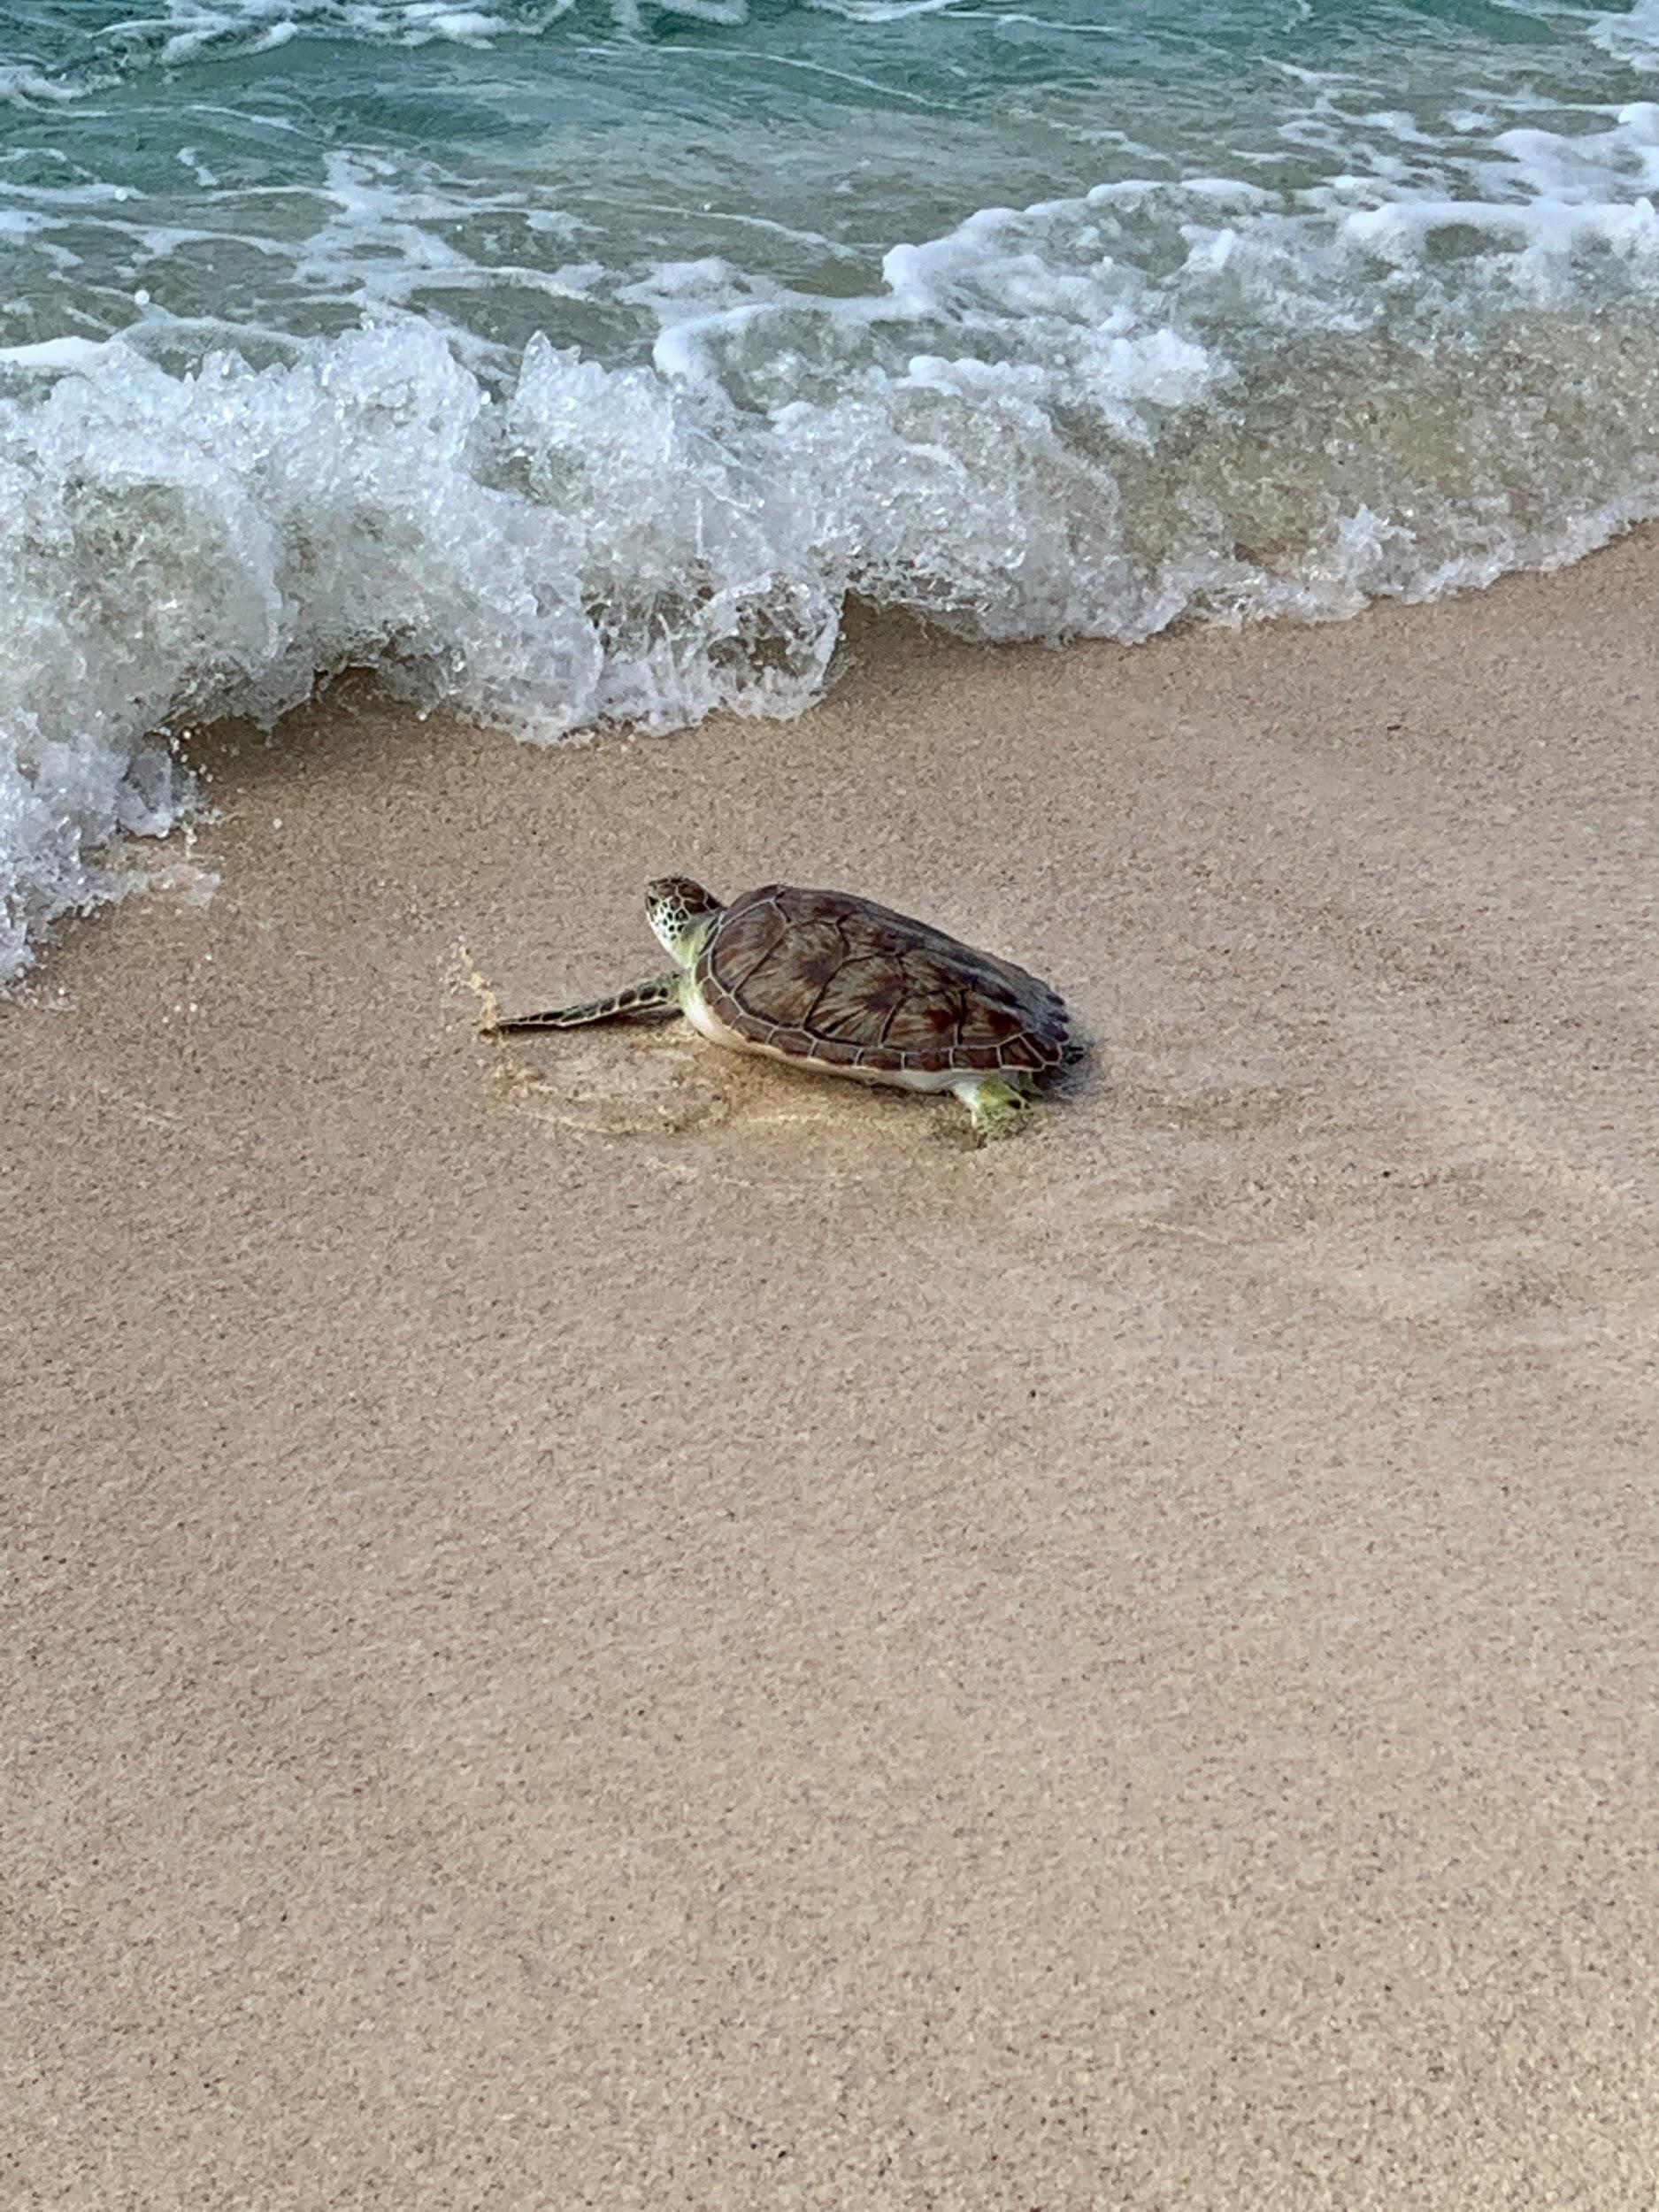 Cayman's Annual Turtle Release Program - Image 1